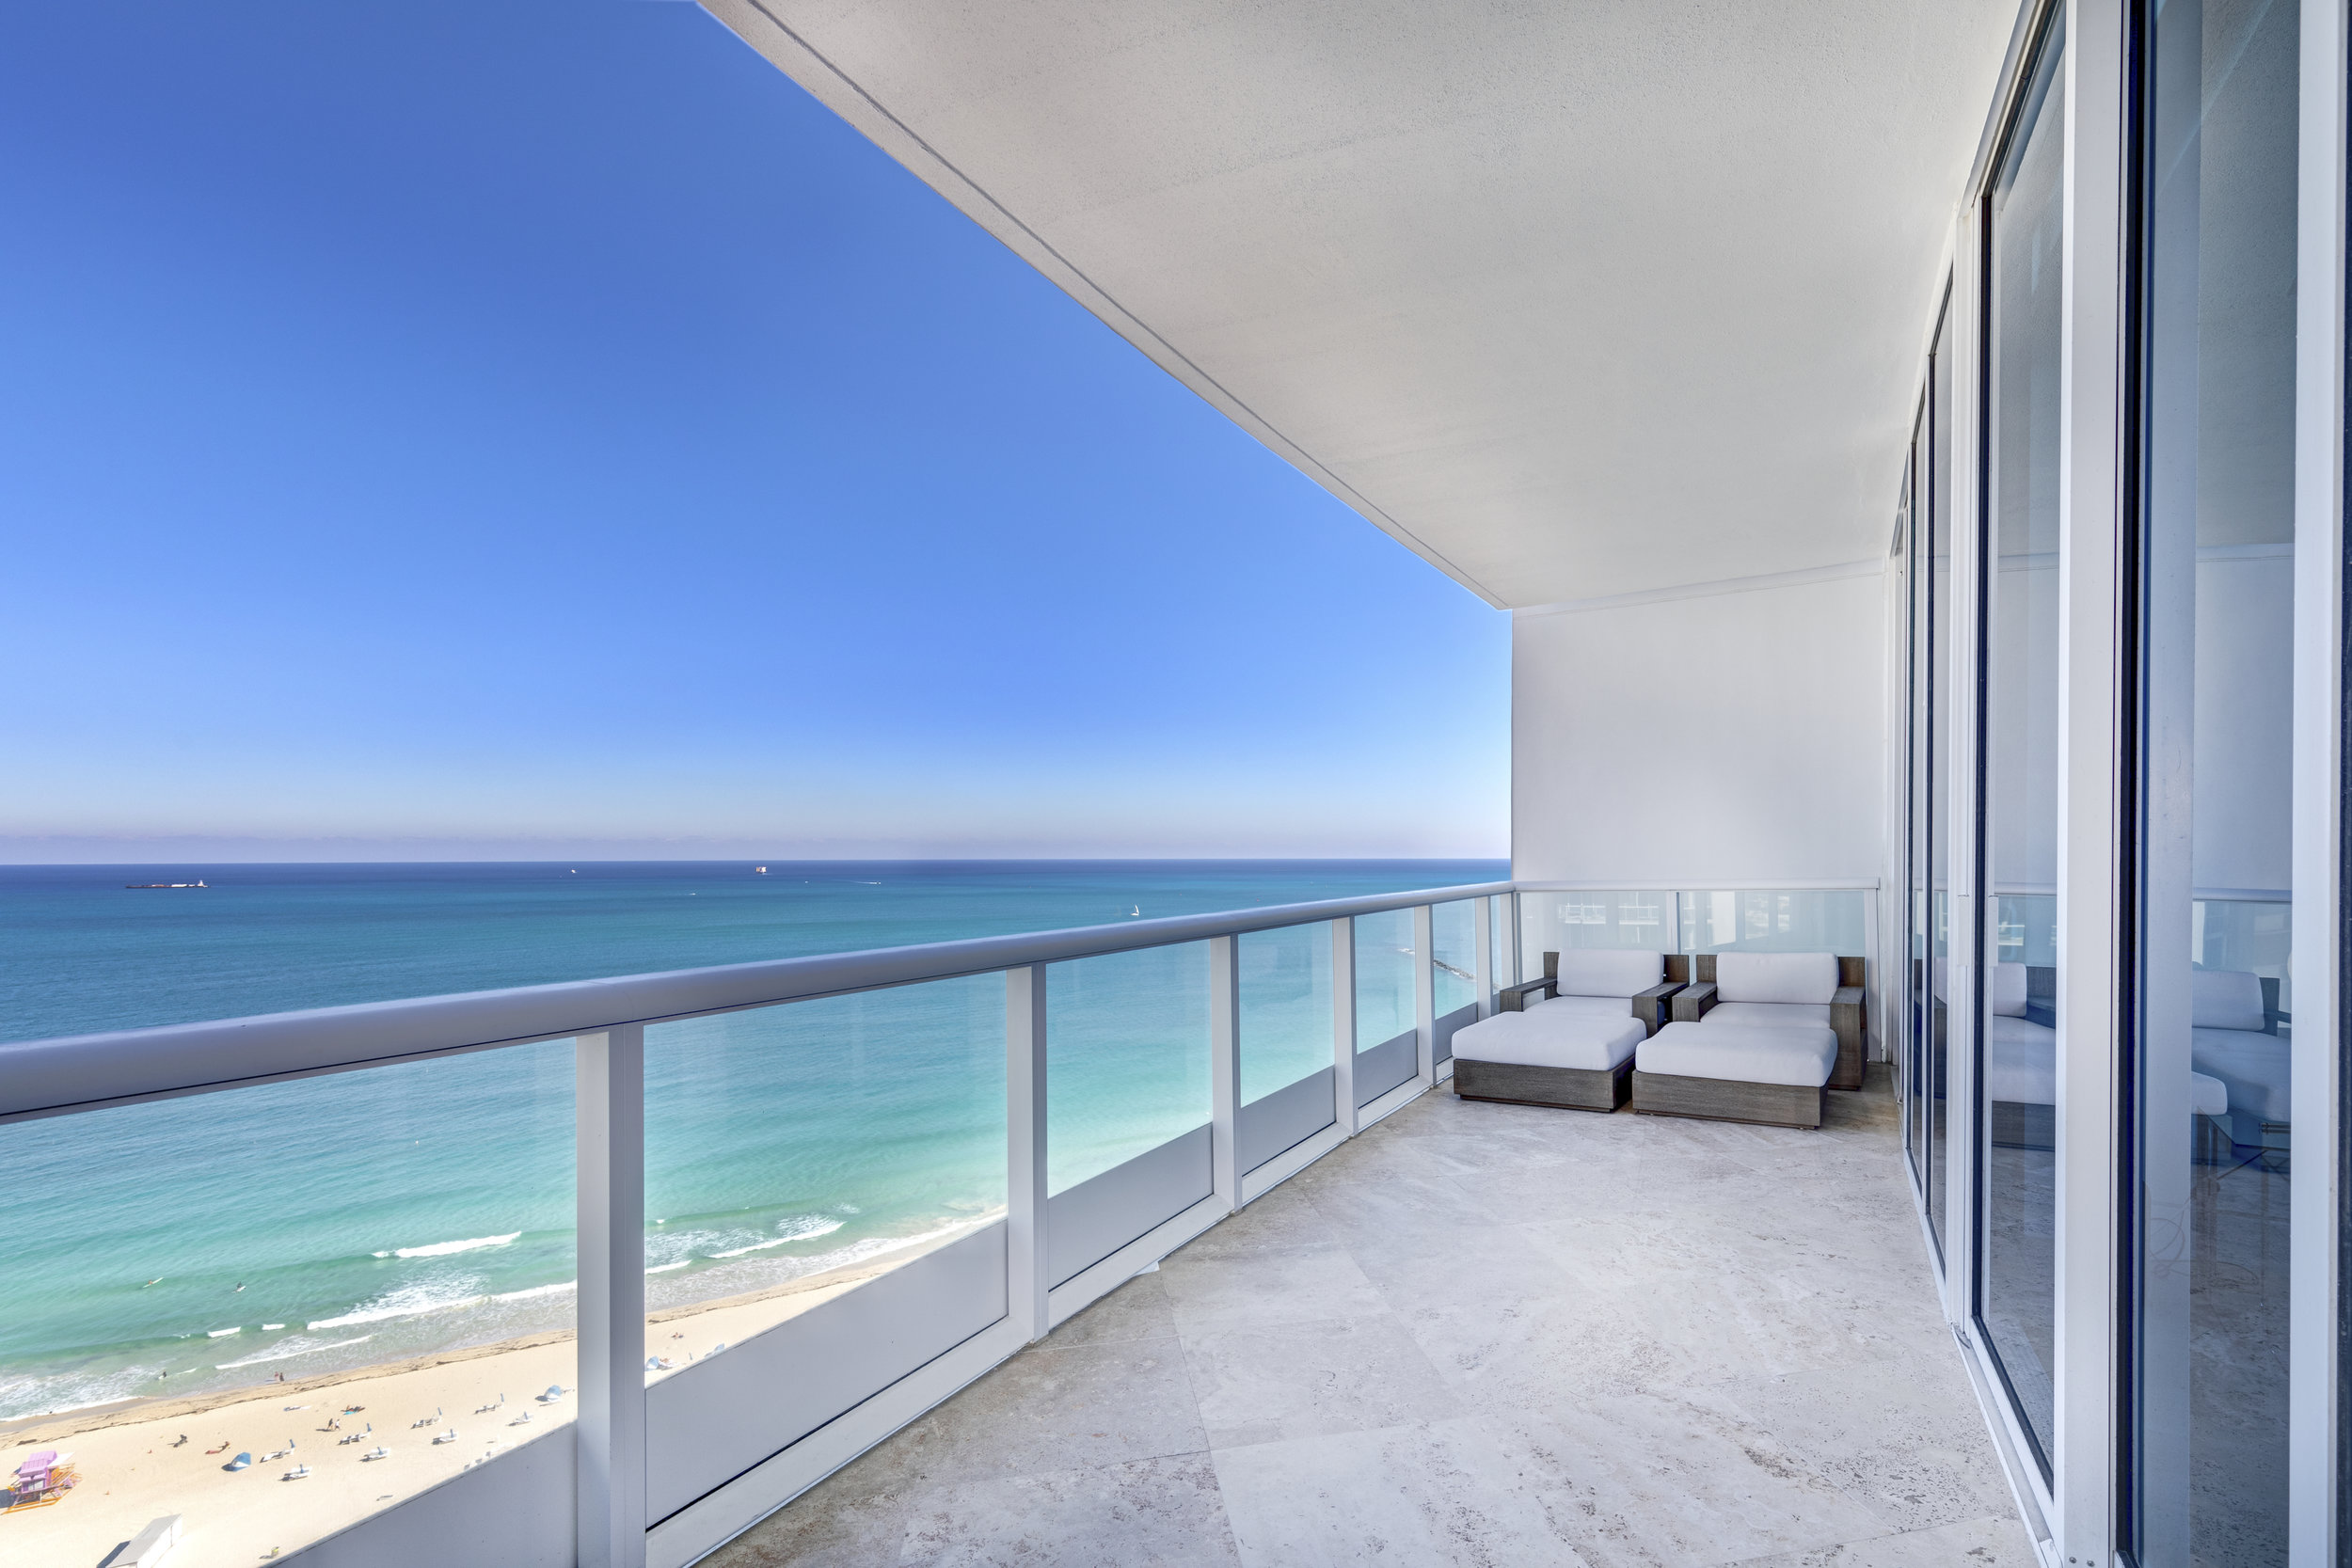 Oceanfront Condo At Continuum South Beach Closes For Record $2,400 Per Foot At $4.2 Million